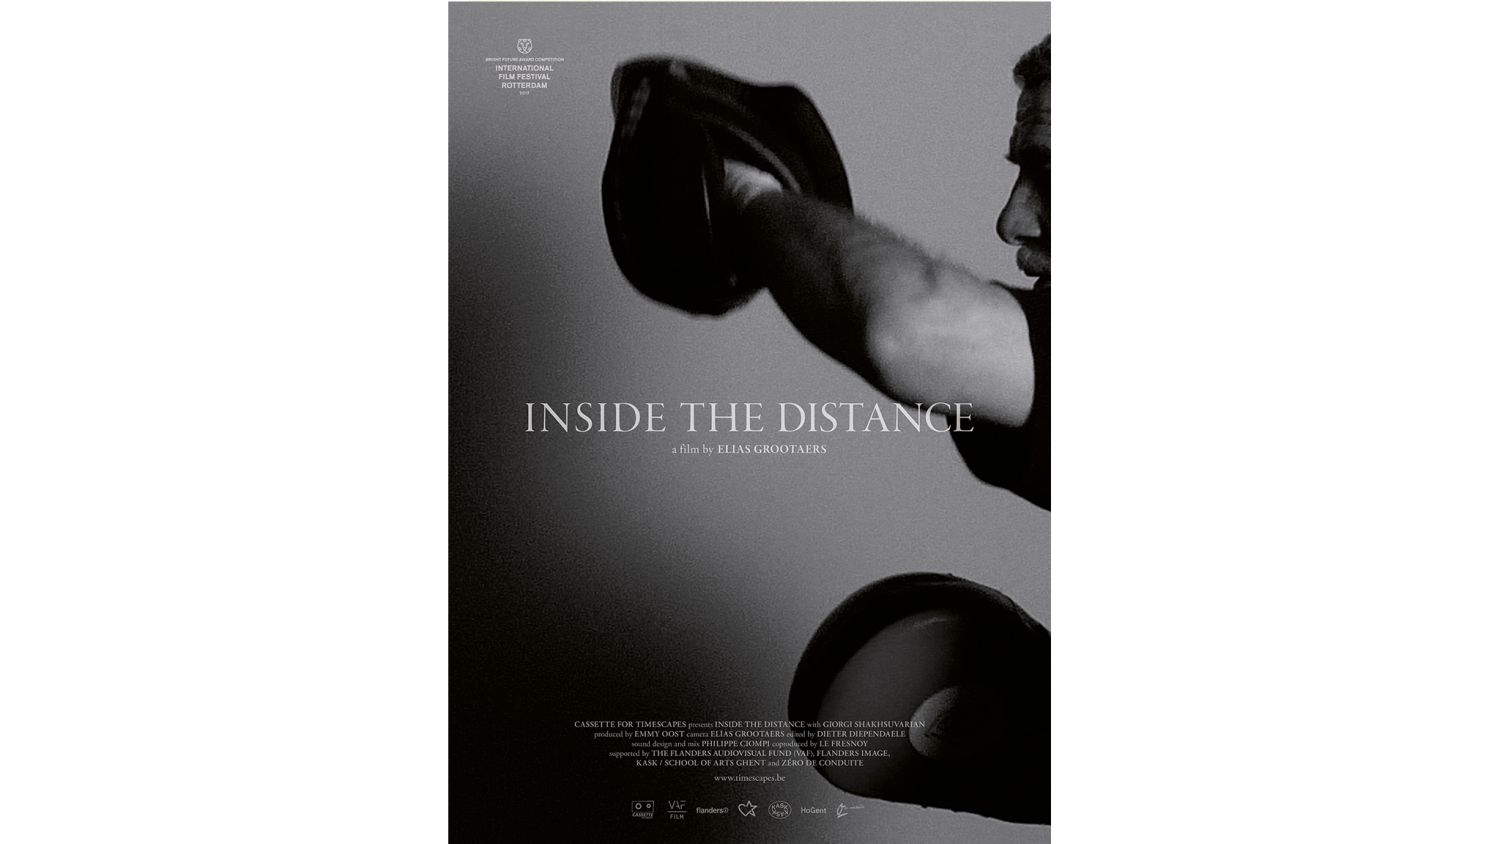 Inside the Distance